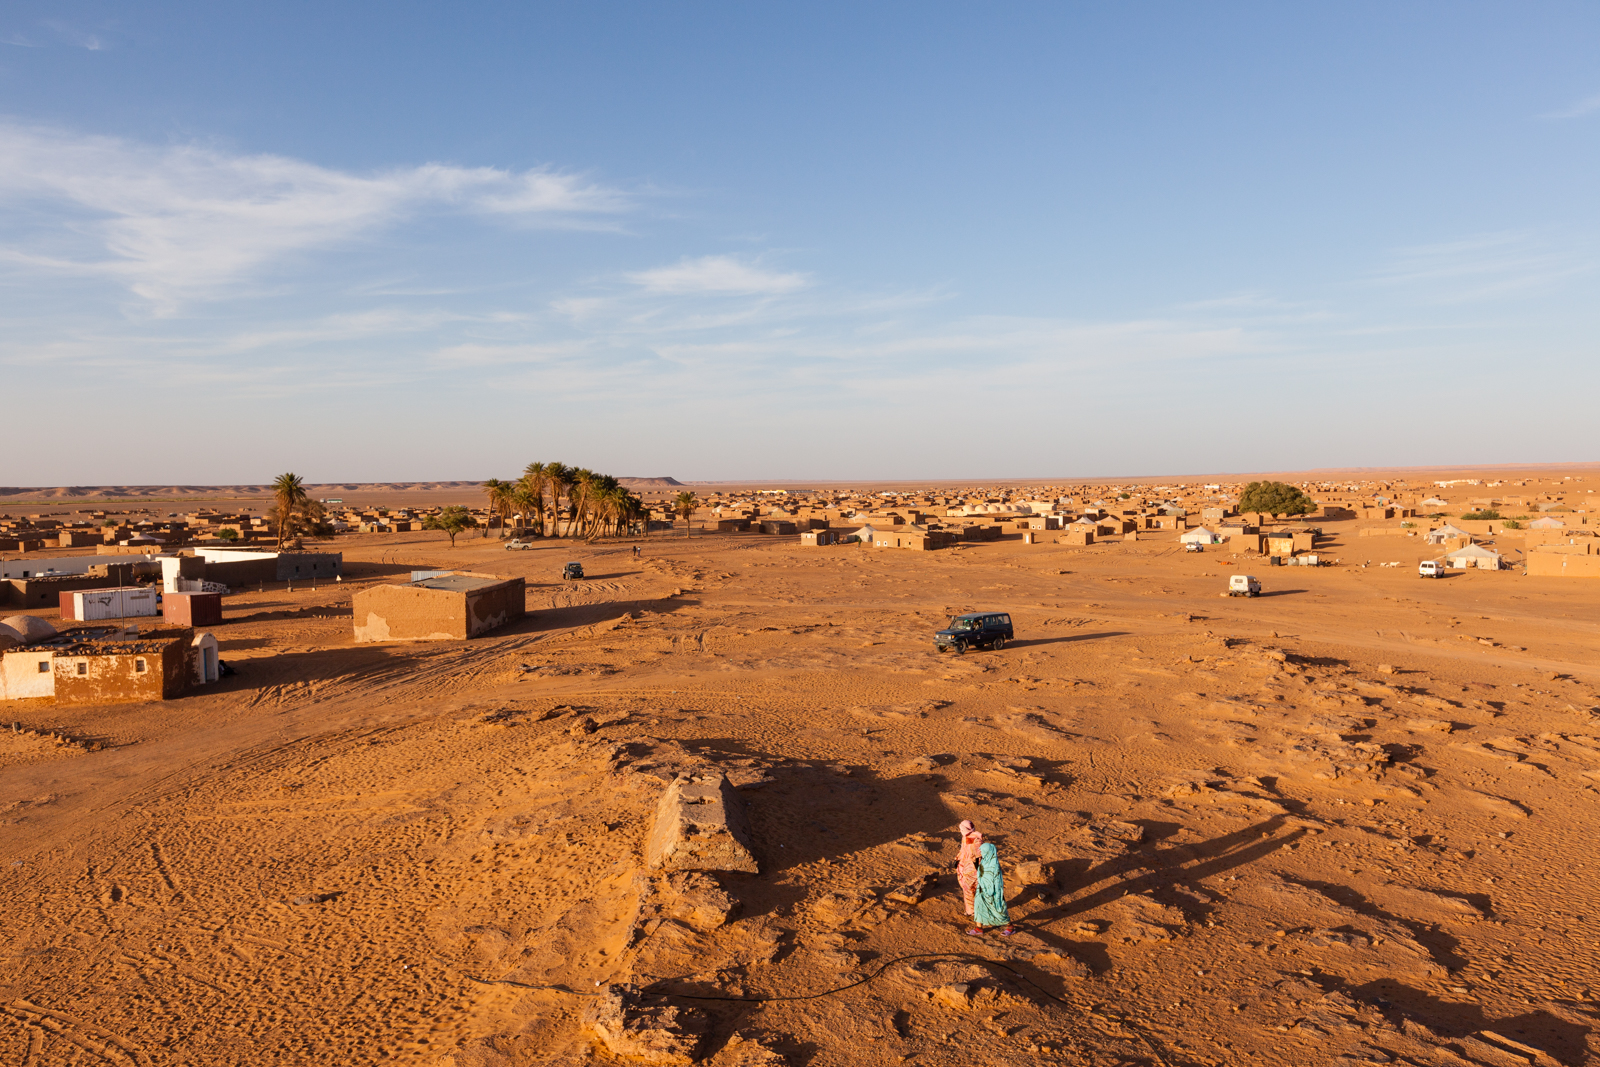 Some 180,000 Saharawis, a Muslim people of Arab and Berber descent, live scattered in camps along Algeria's border with Mauritania, exiles of a long struggle with Morocco over Western Sahara. Credit: Andy Isaacson